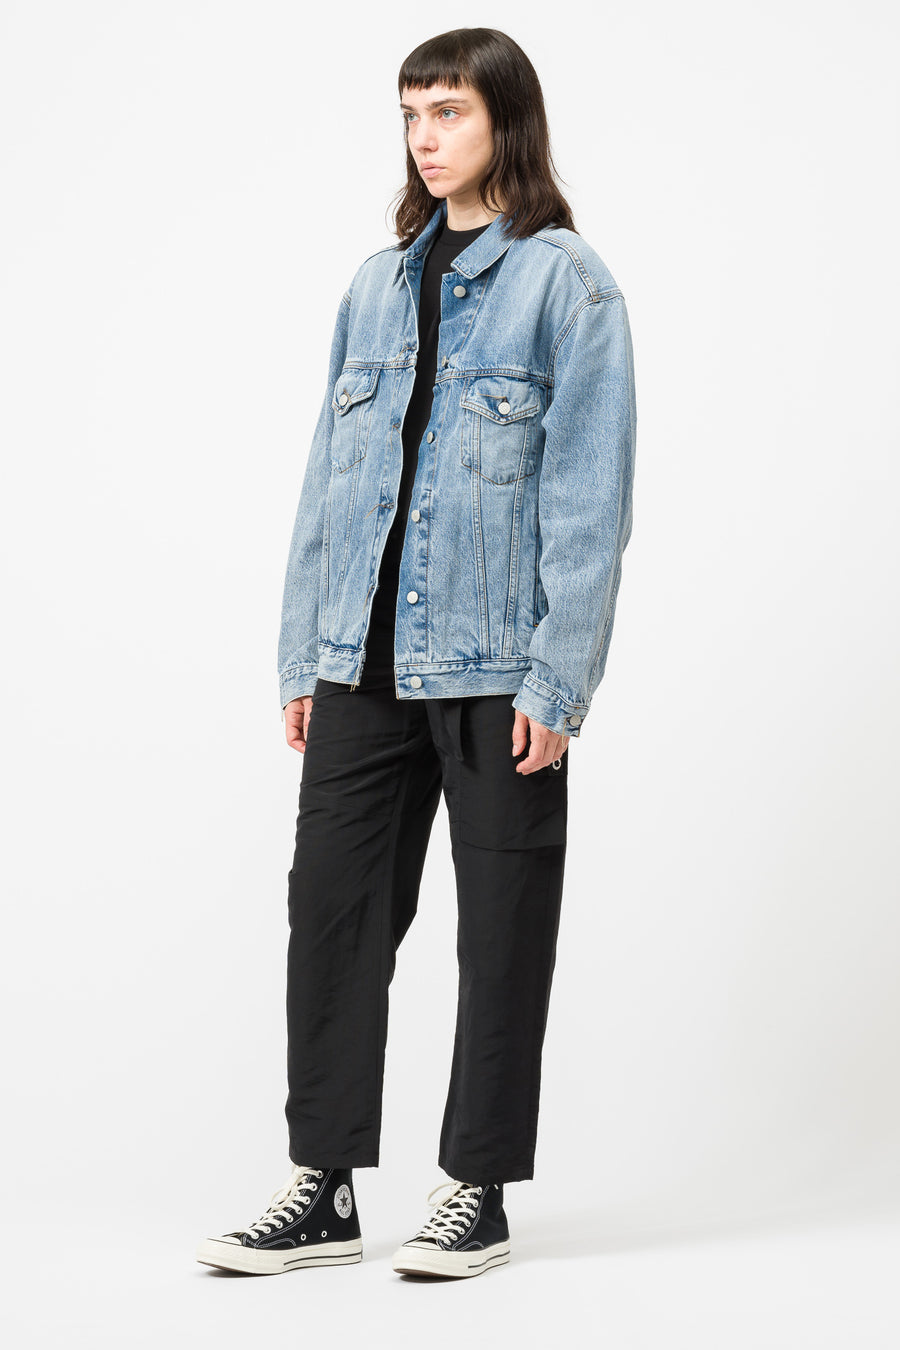 Acne Studios 2000 Trash Jacket in Light Blue - Notre